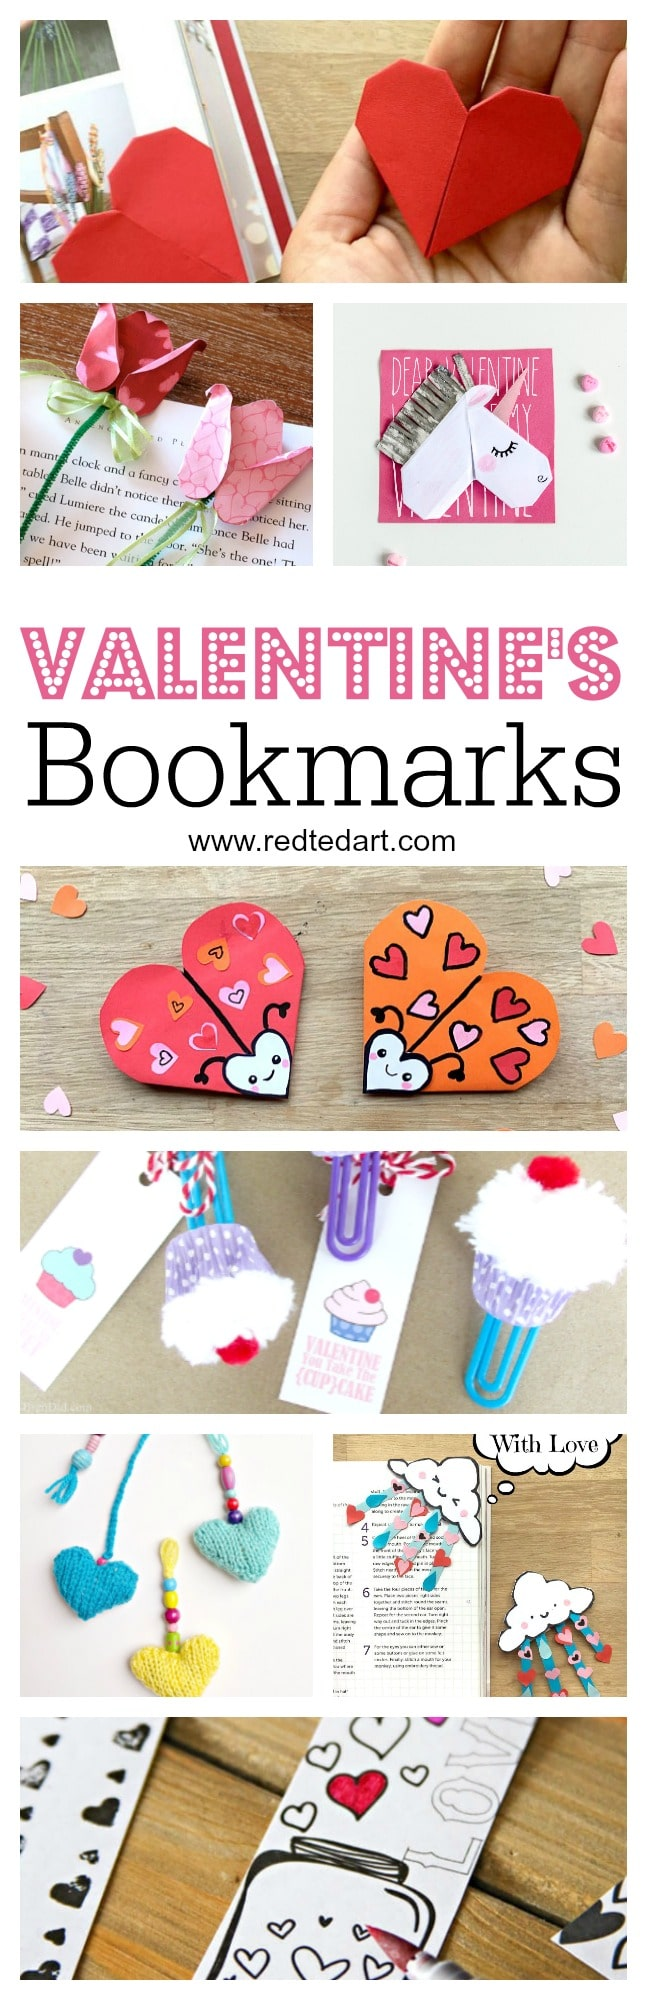 Kids Valentines Bookmark Designs. These Valentine's Day Bookmarks are super cute and easy to make. A great Valentines Gift for Kids to make #valentines #bookmarks #valentinesday #bookmarkdesigns #kids